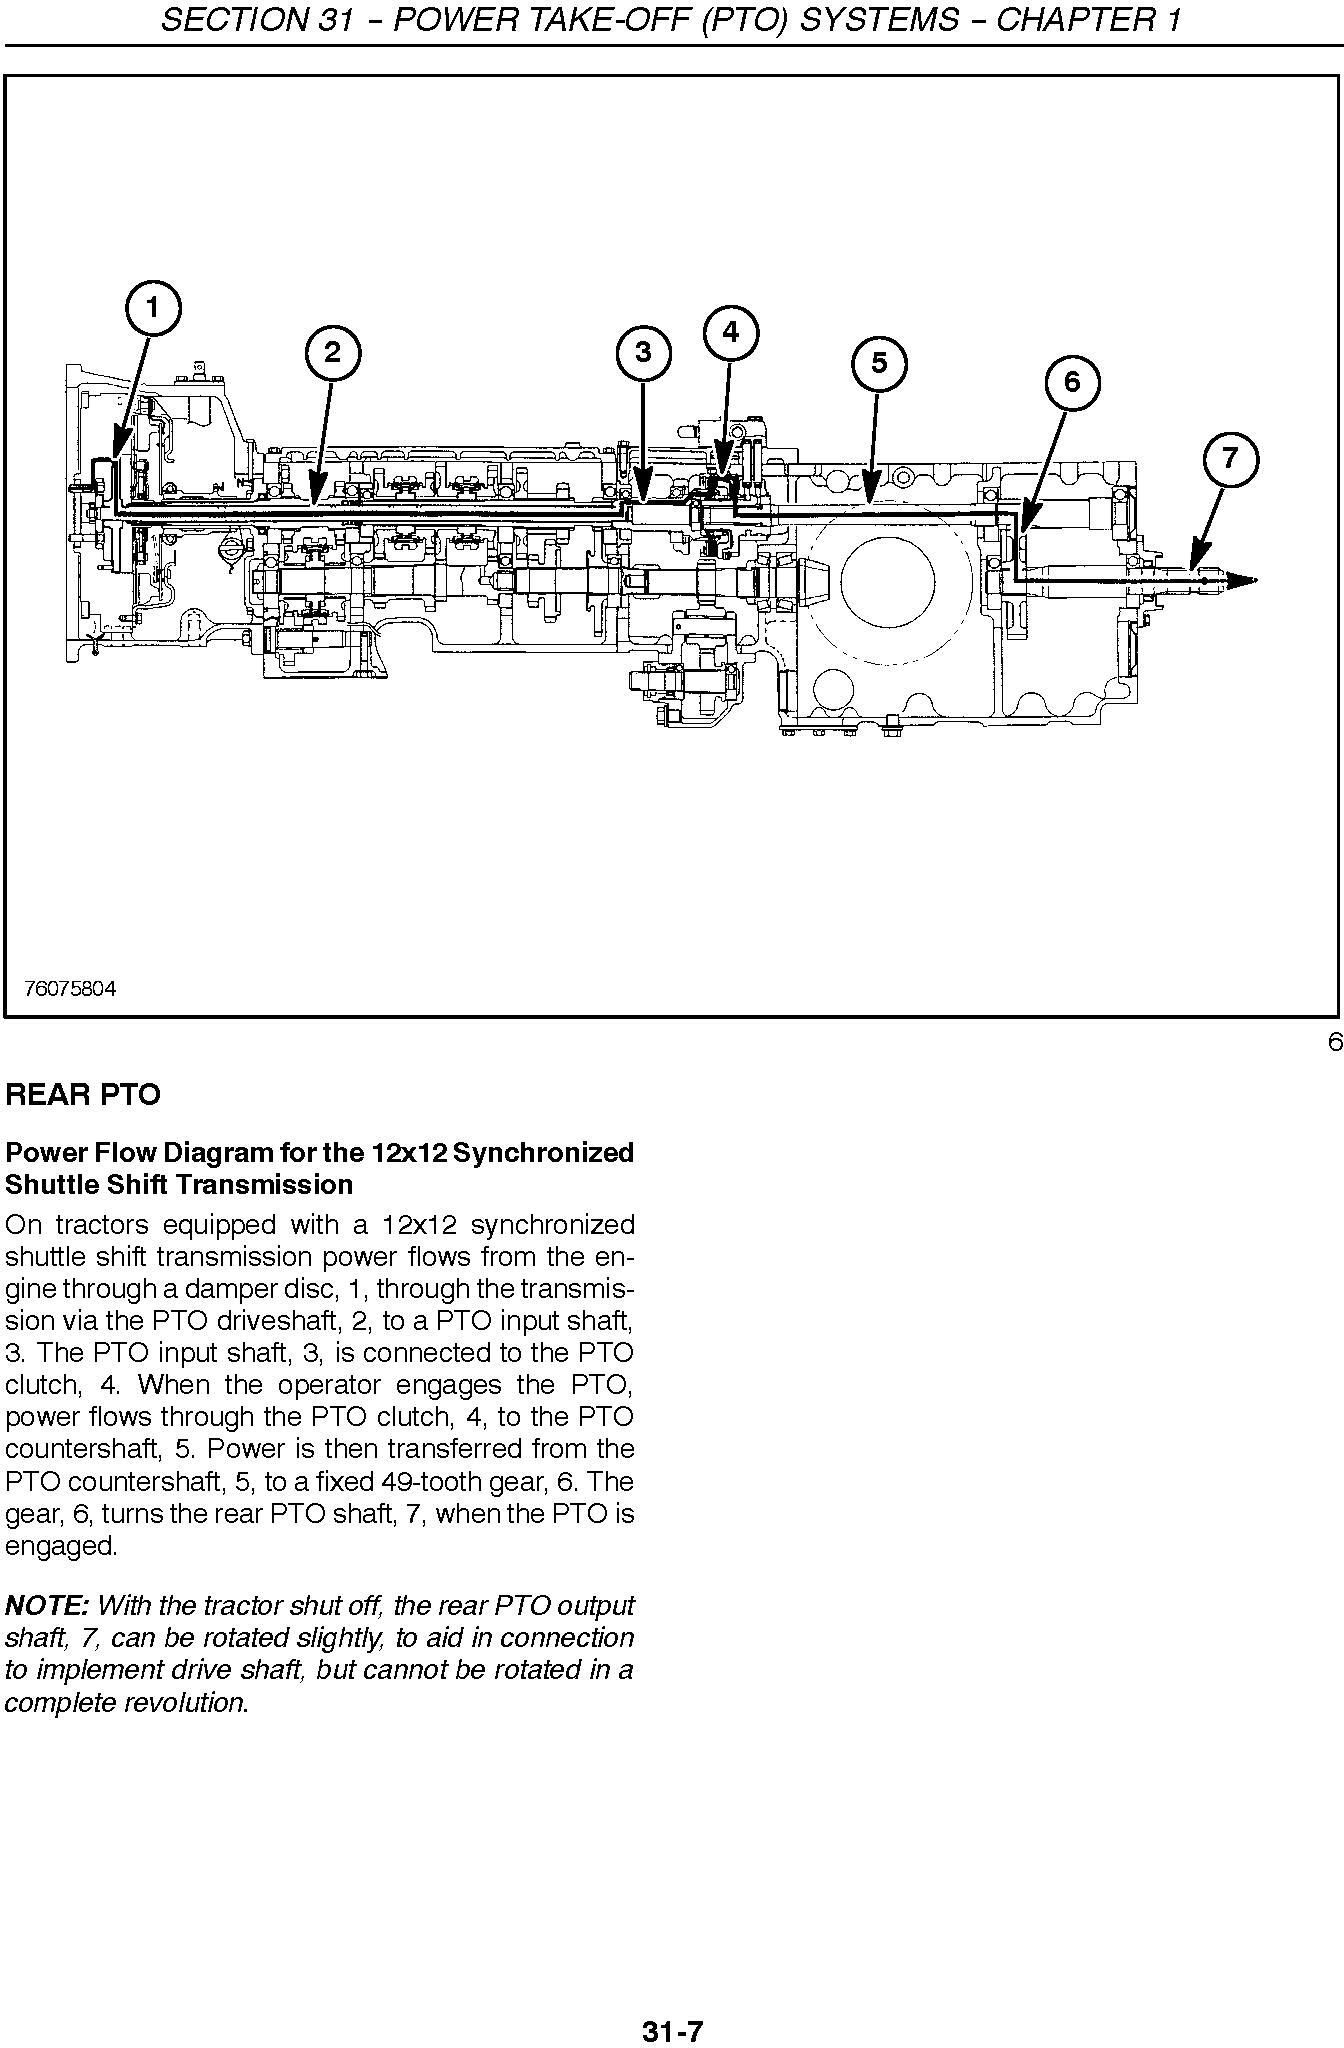 New Holland T2310, T2320, T2330 Tractor Service Manual - 2